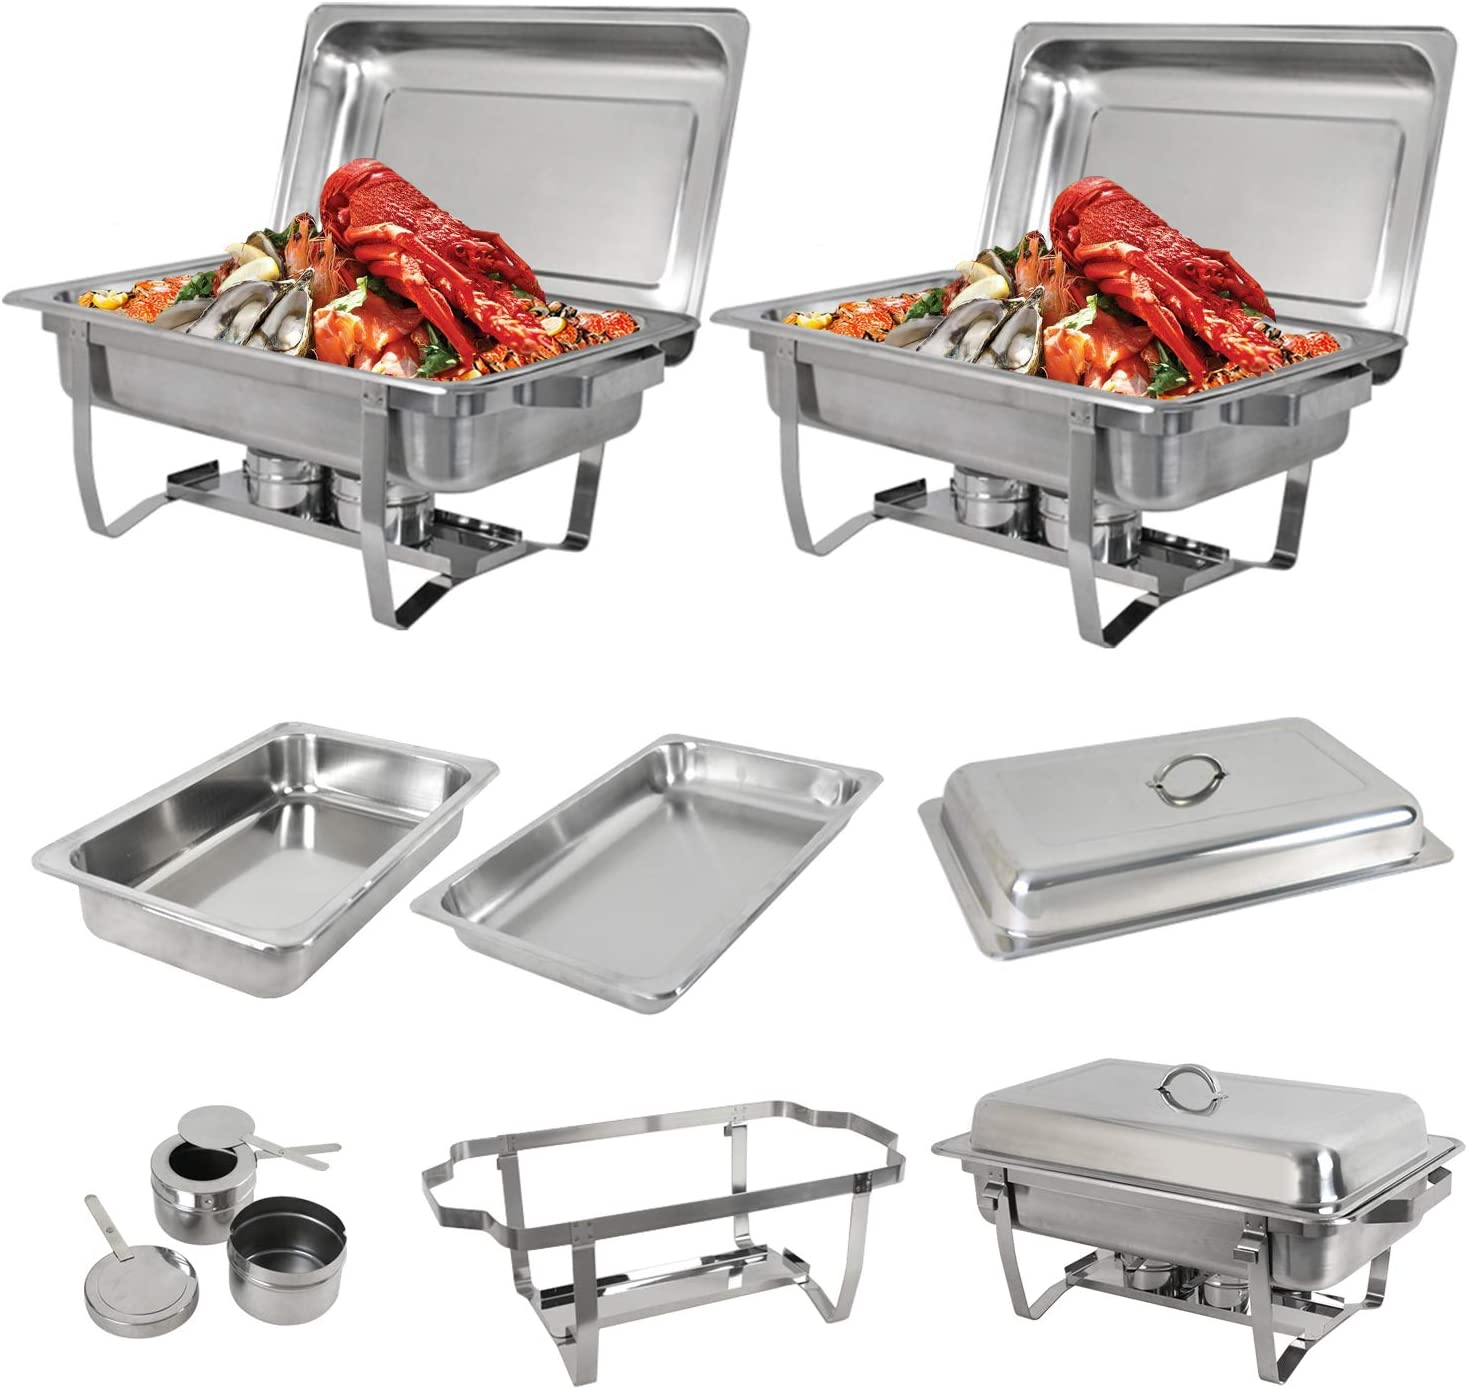 SUPER DEAL 8 Qt Stainless Steel 2 Pack Full Size Chafer Dish w/Water Pan, Food Pan, Fuel Holder and Lid For Buffet/Weddings/Parties/Banquets/Catering Events (2)